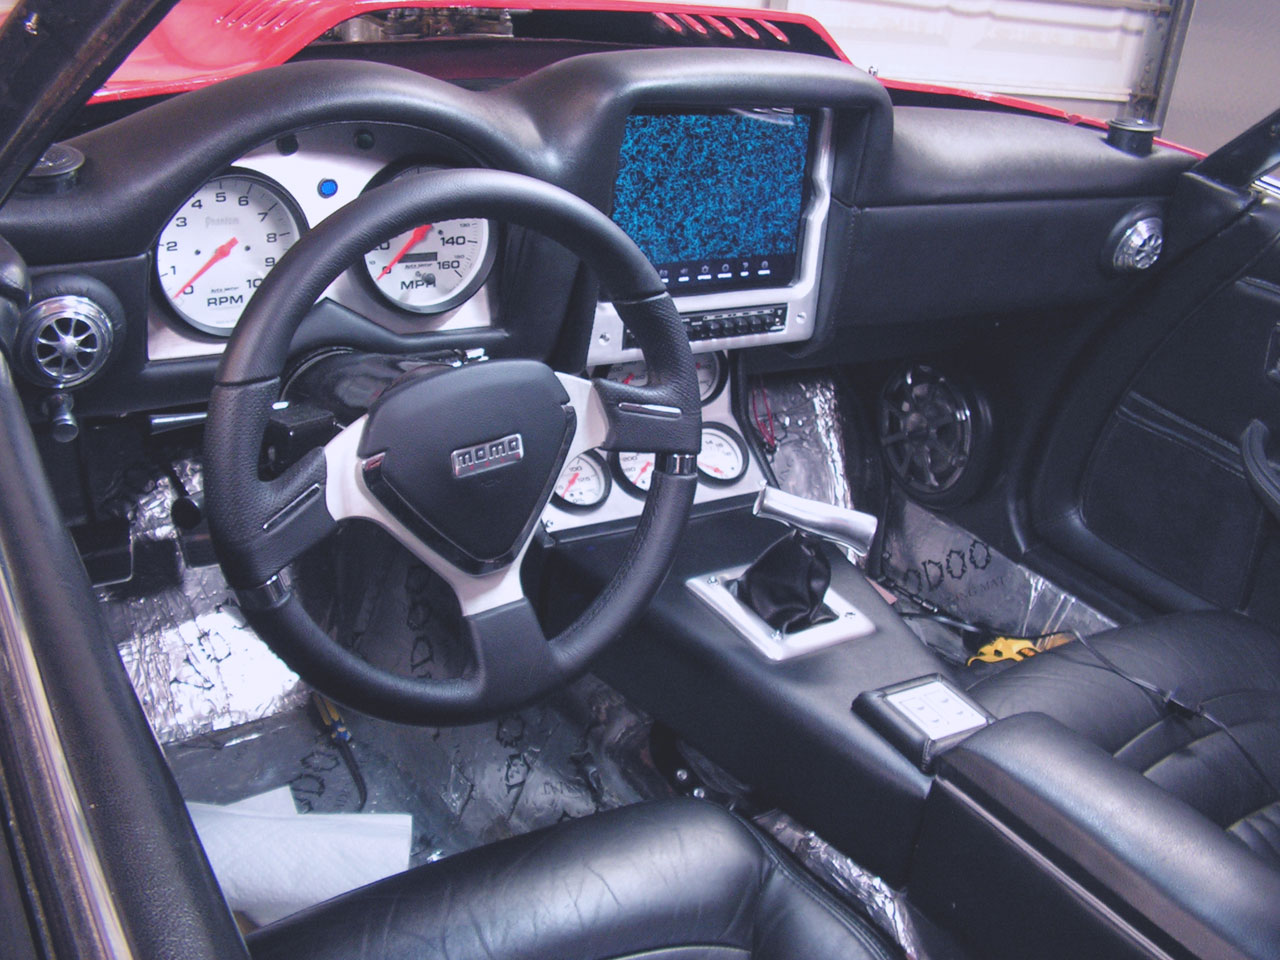 1981 Corvette Gets a Custom iPad Install